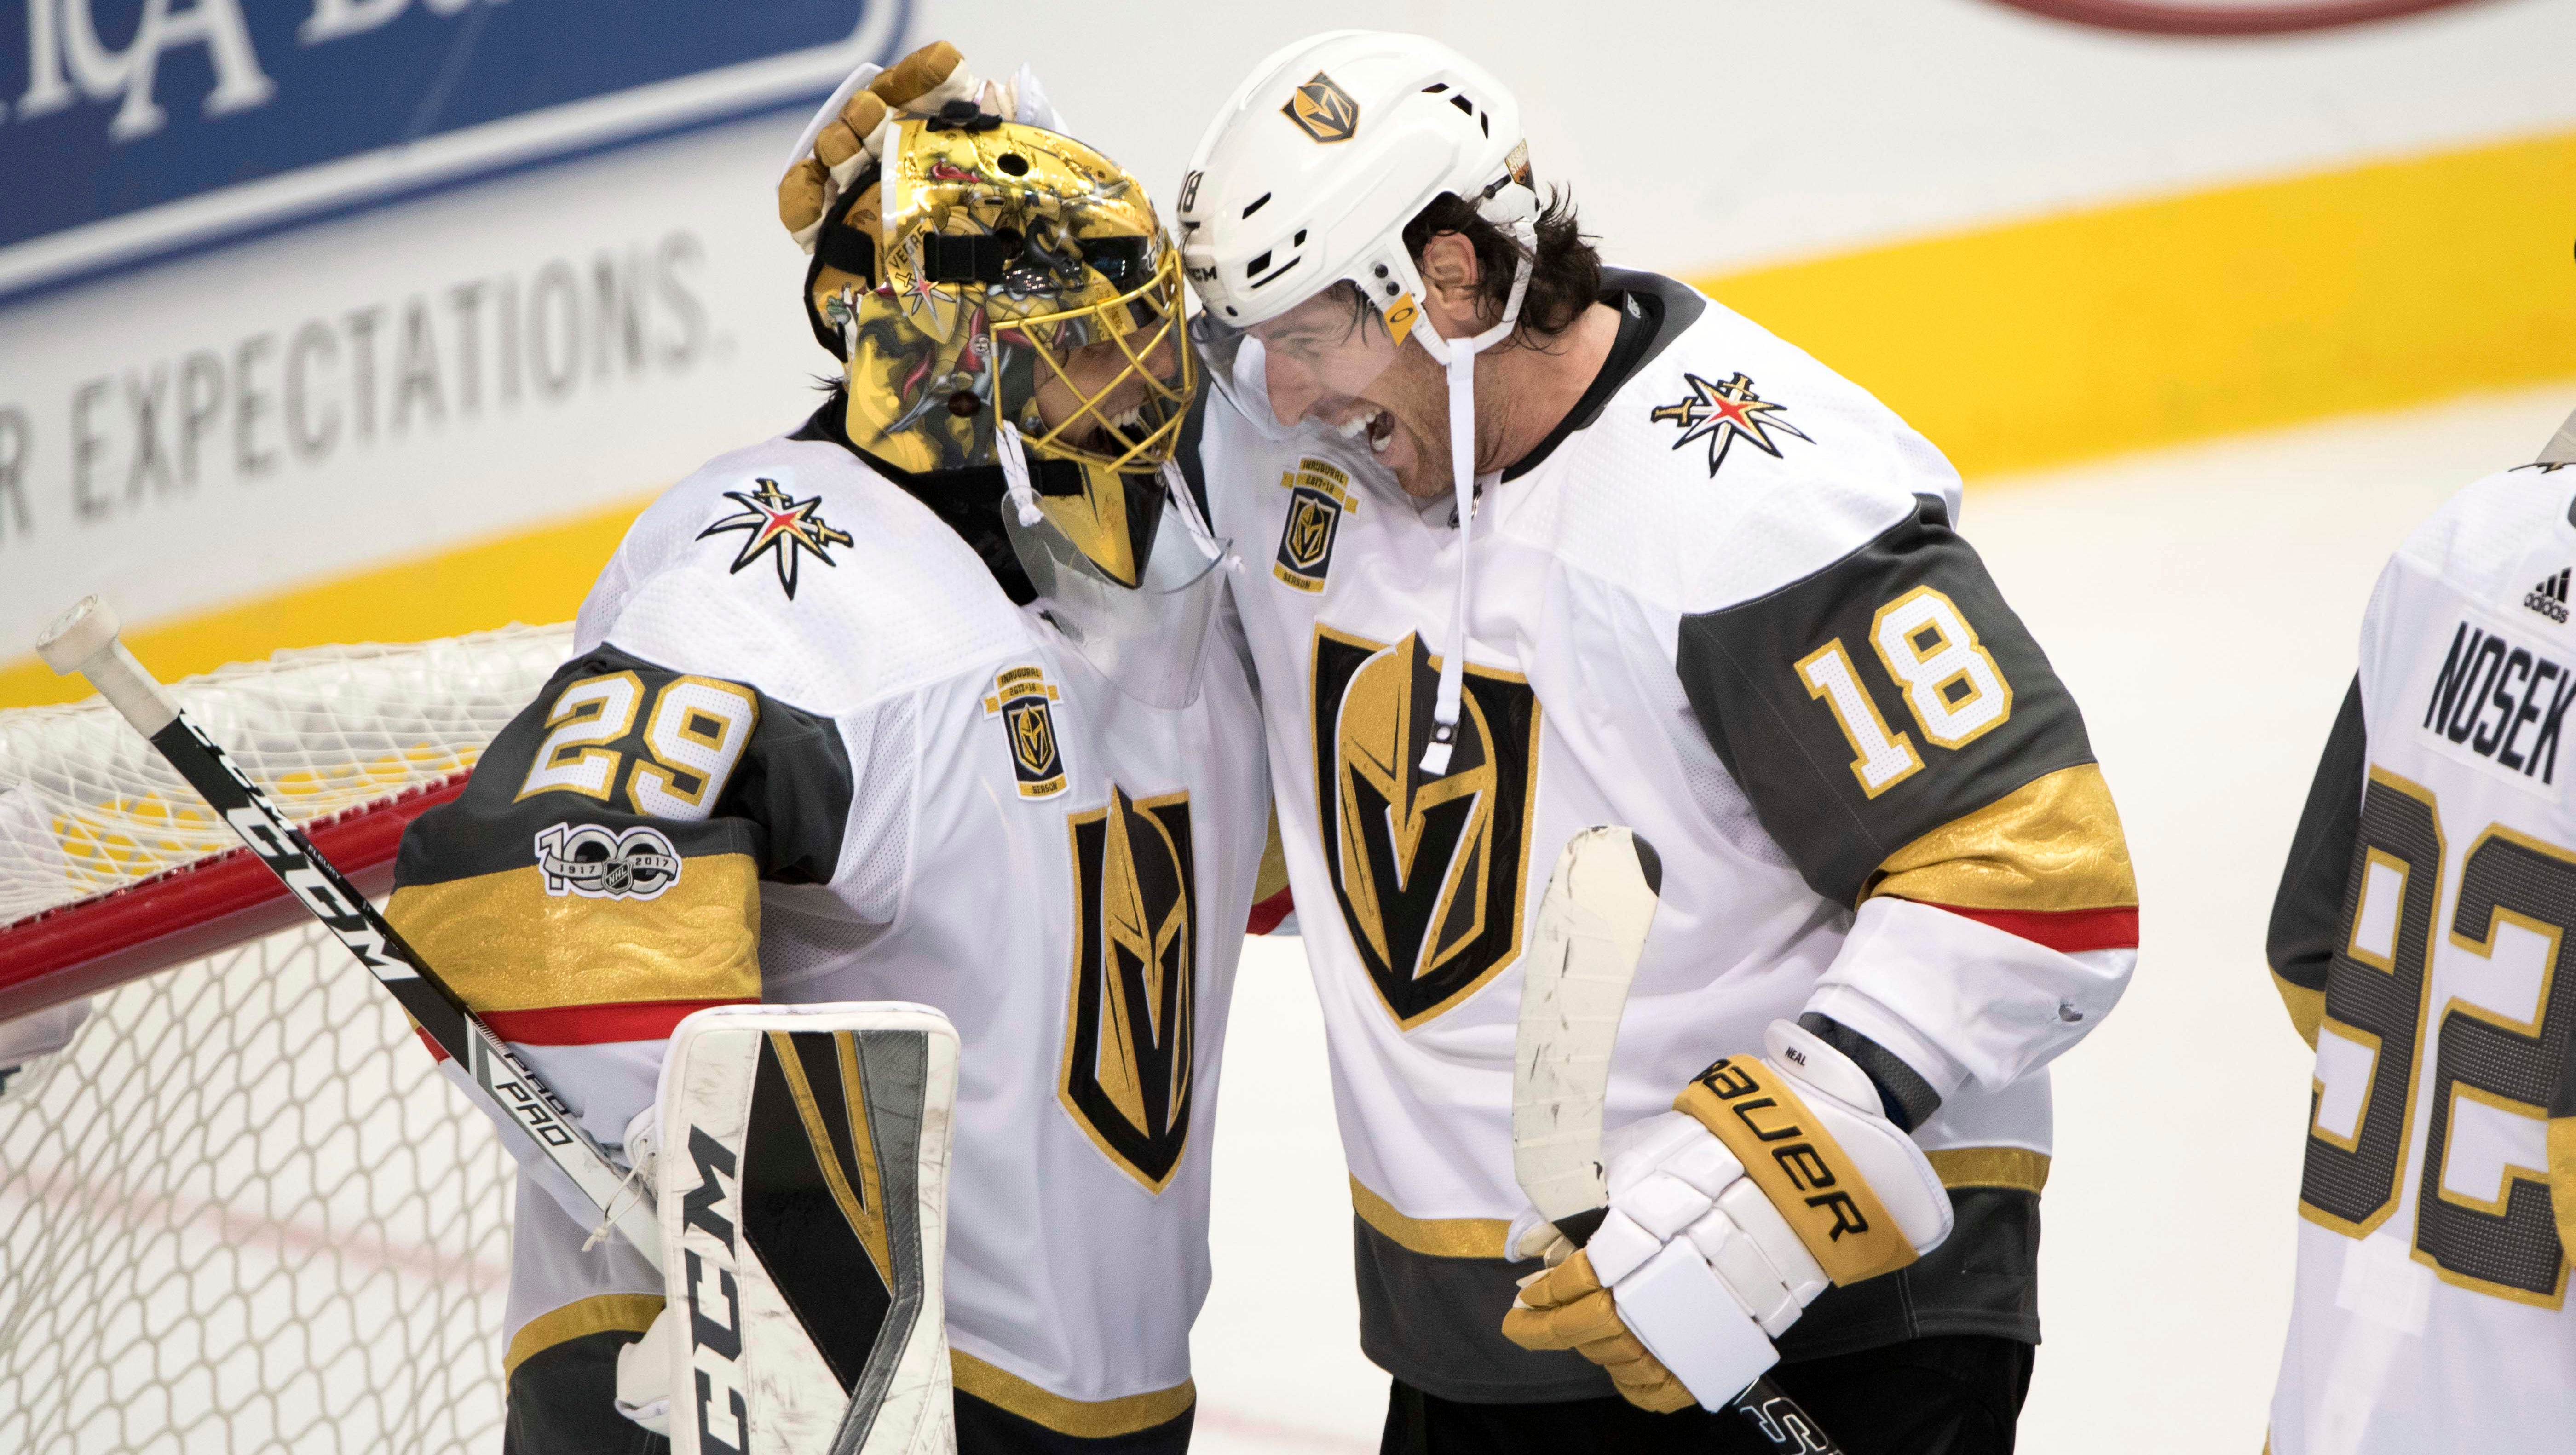 Marc-Andre Fleury, James Neal help Vegas Golden Knights win first game